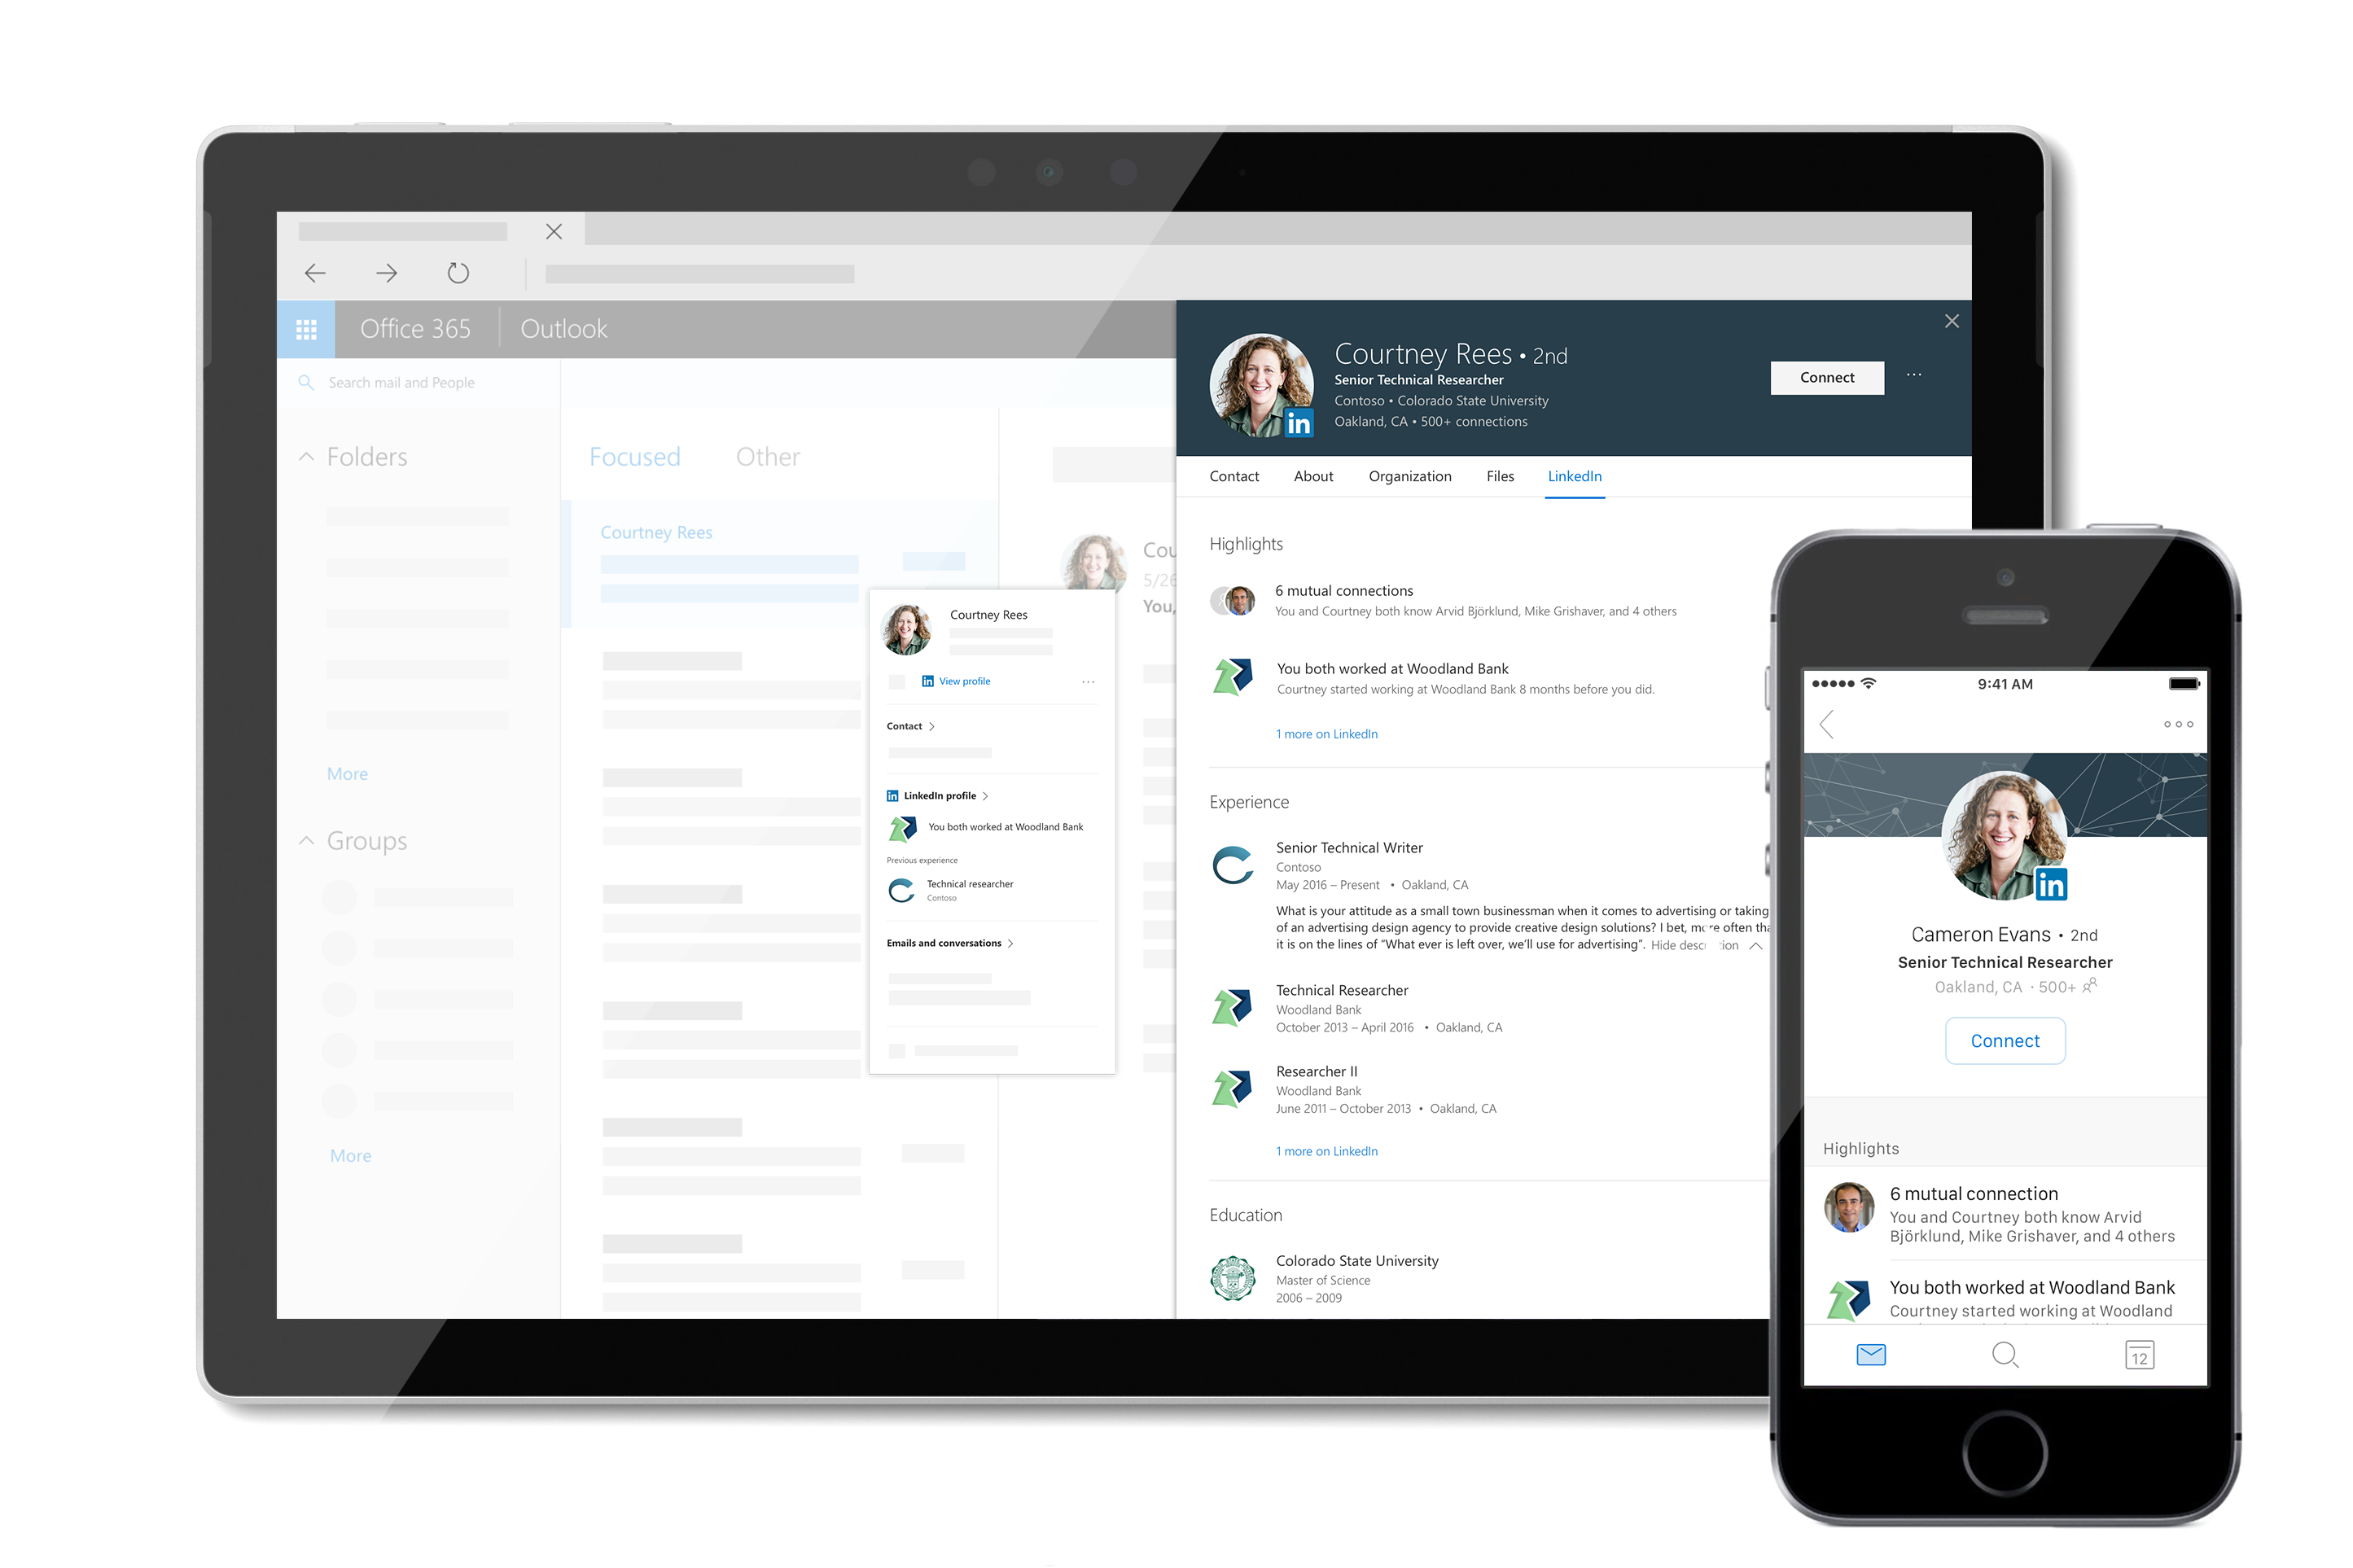 Adding LinkedIn's Profile Card on Office 365 Offers a Simple Way to Build a Professional Relationship